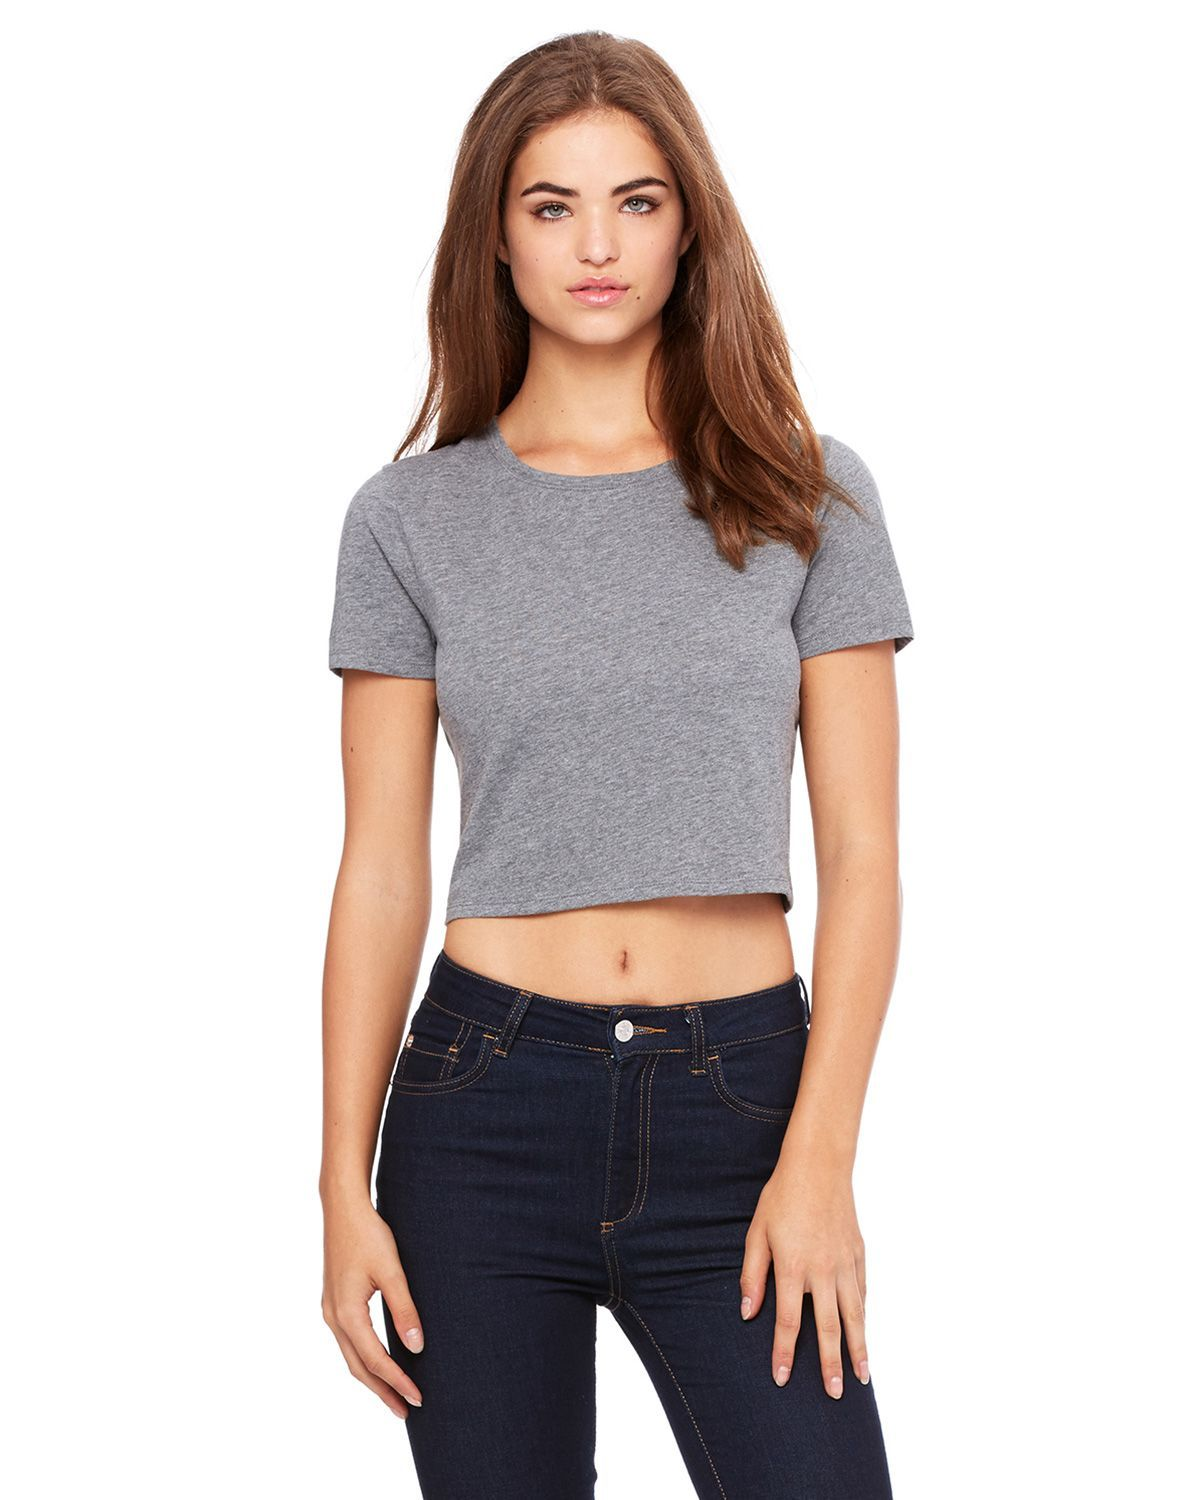 Watchill'n 'Cafe Racer' - Women's Crop Tee (Grey) - Watch Hill RI t-shirts with vintage surfing and motorcycle designs.